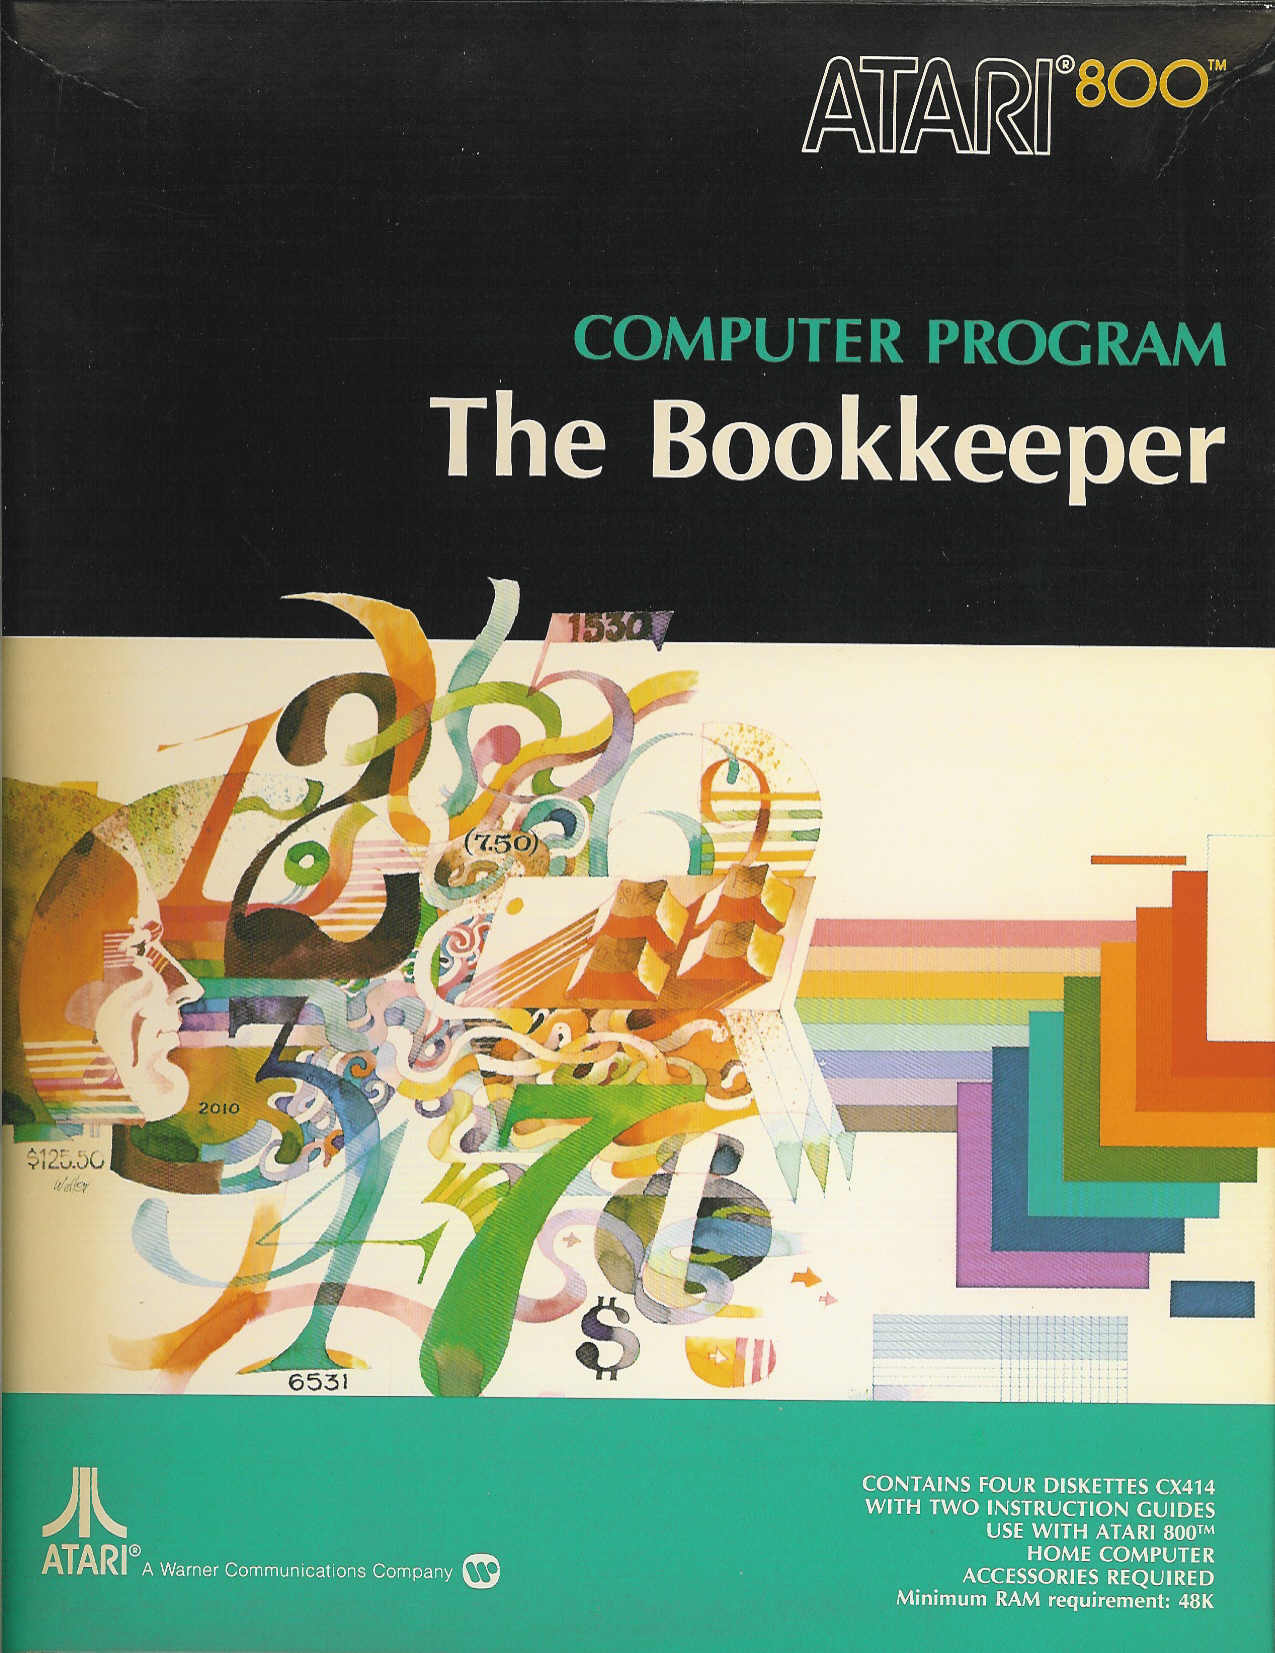 The Bookkeeper/bookkefront.jpg